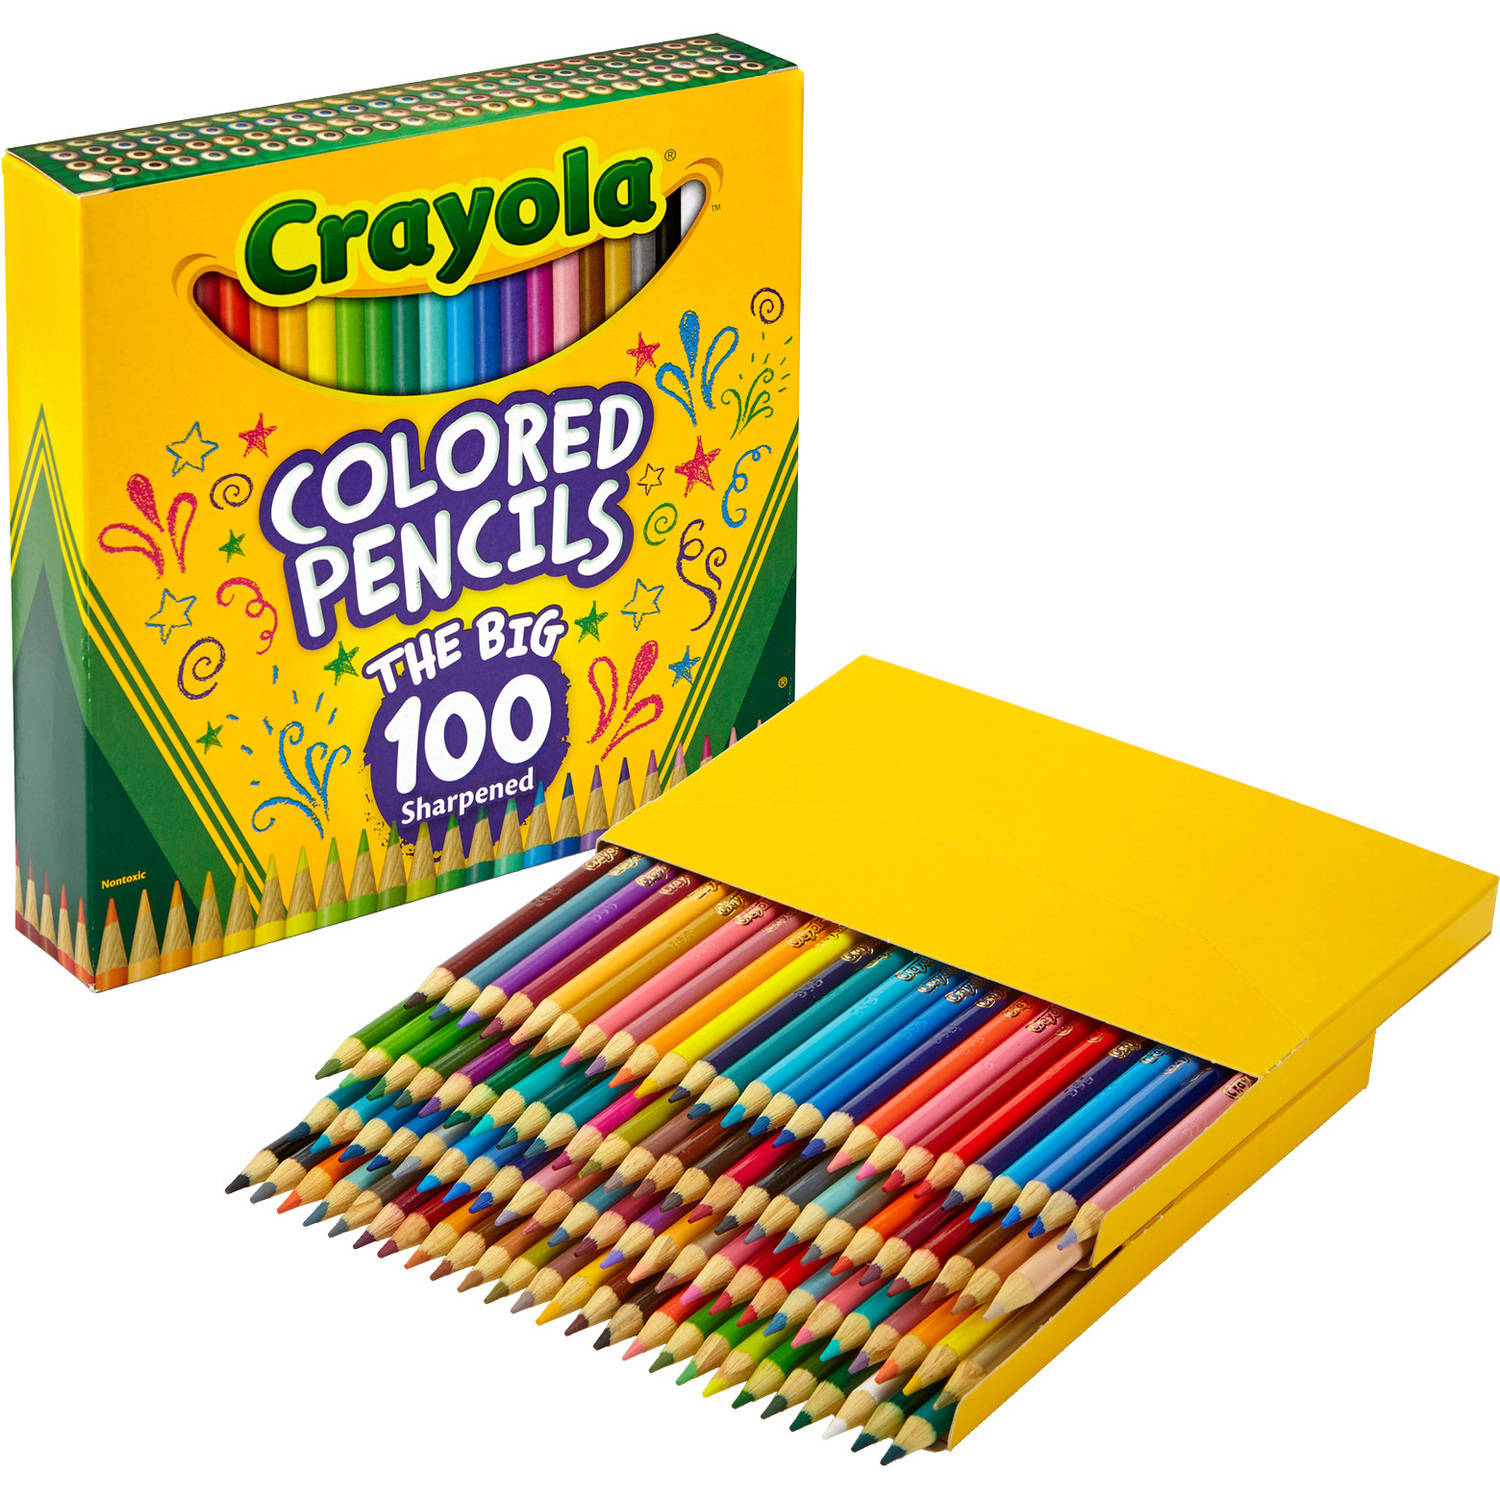 Crayola Colored Pencils, Pre-sharpened, 100-Count